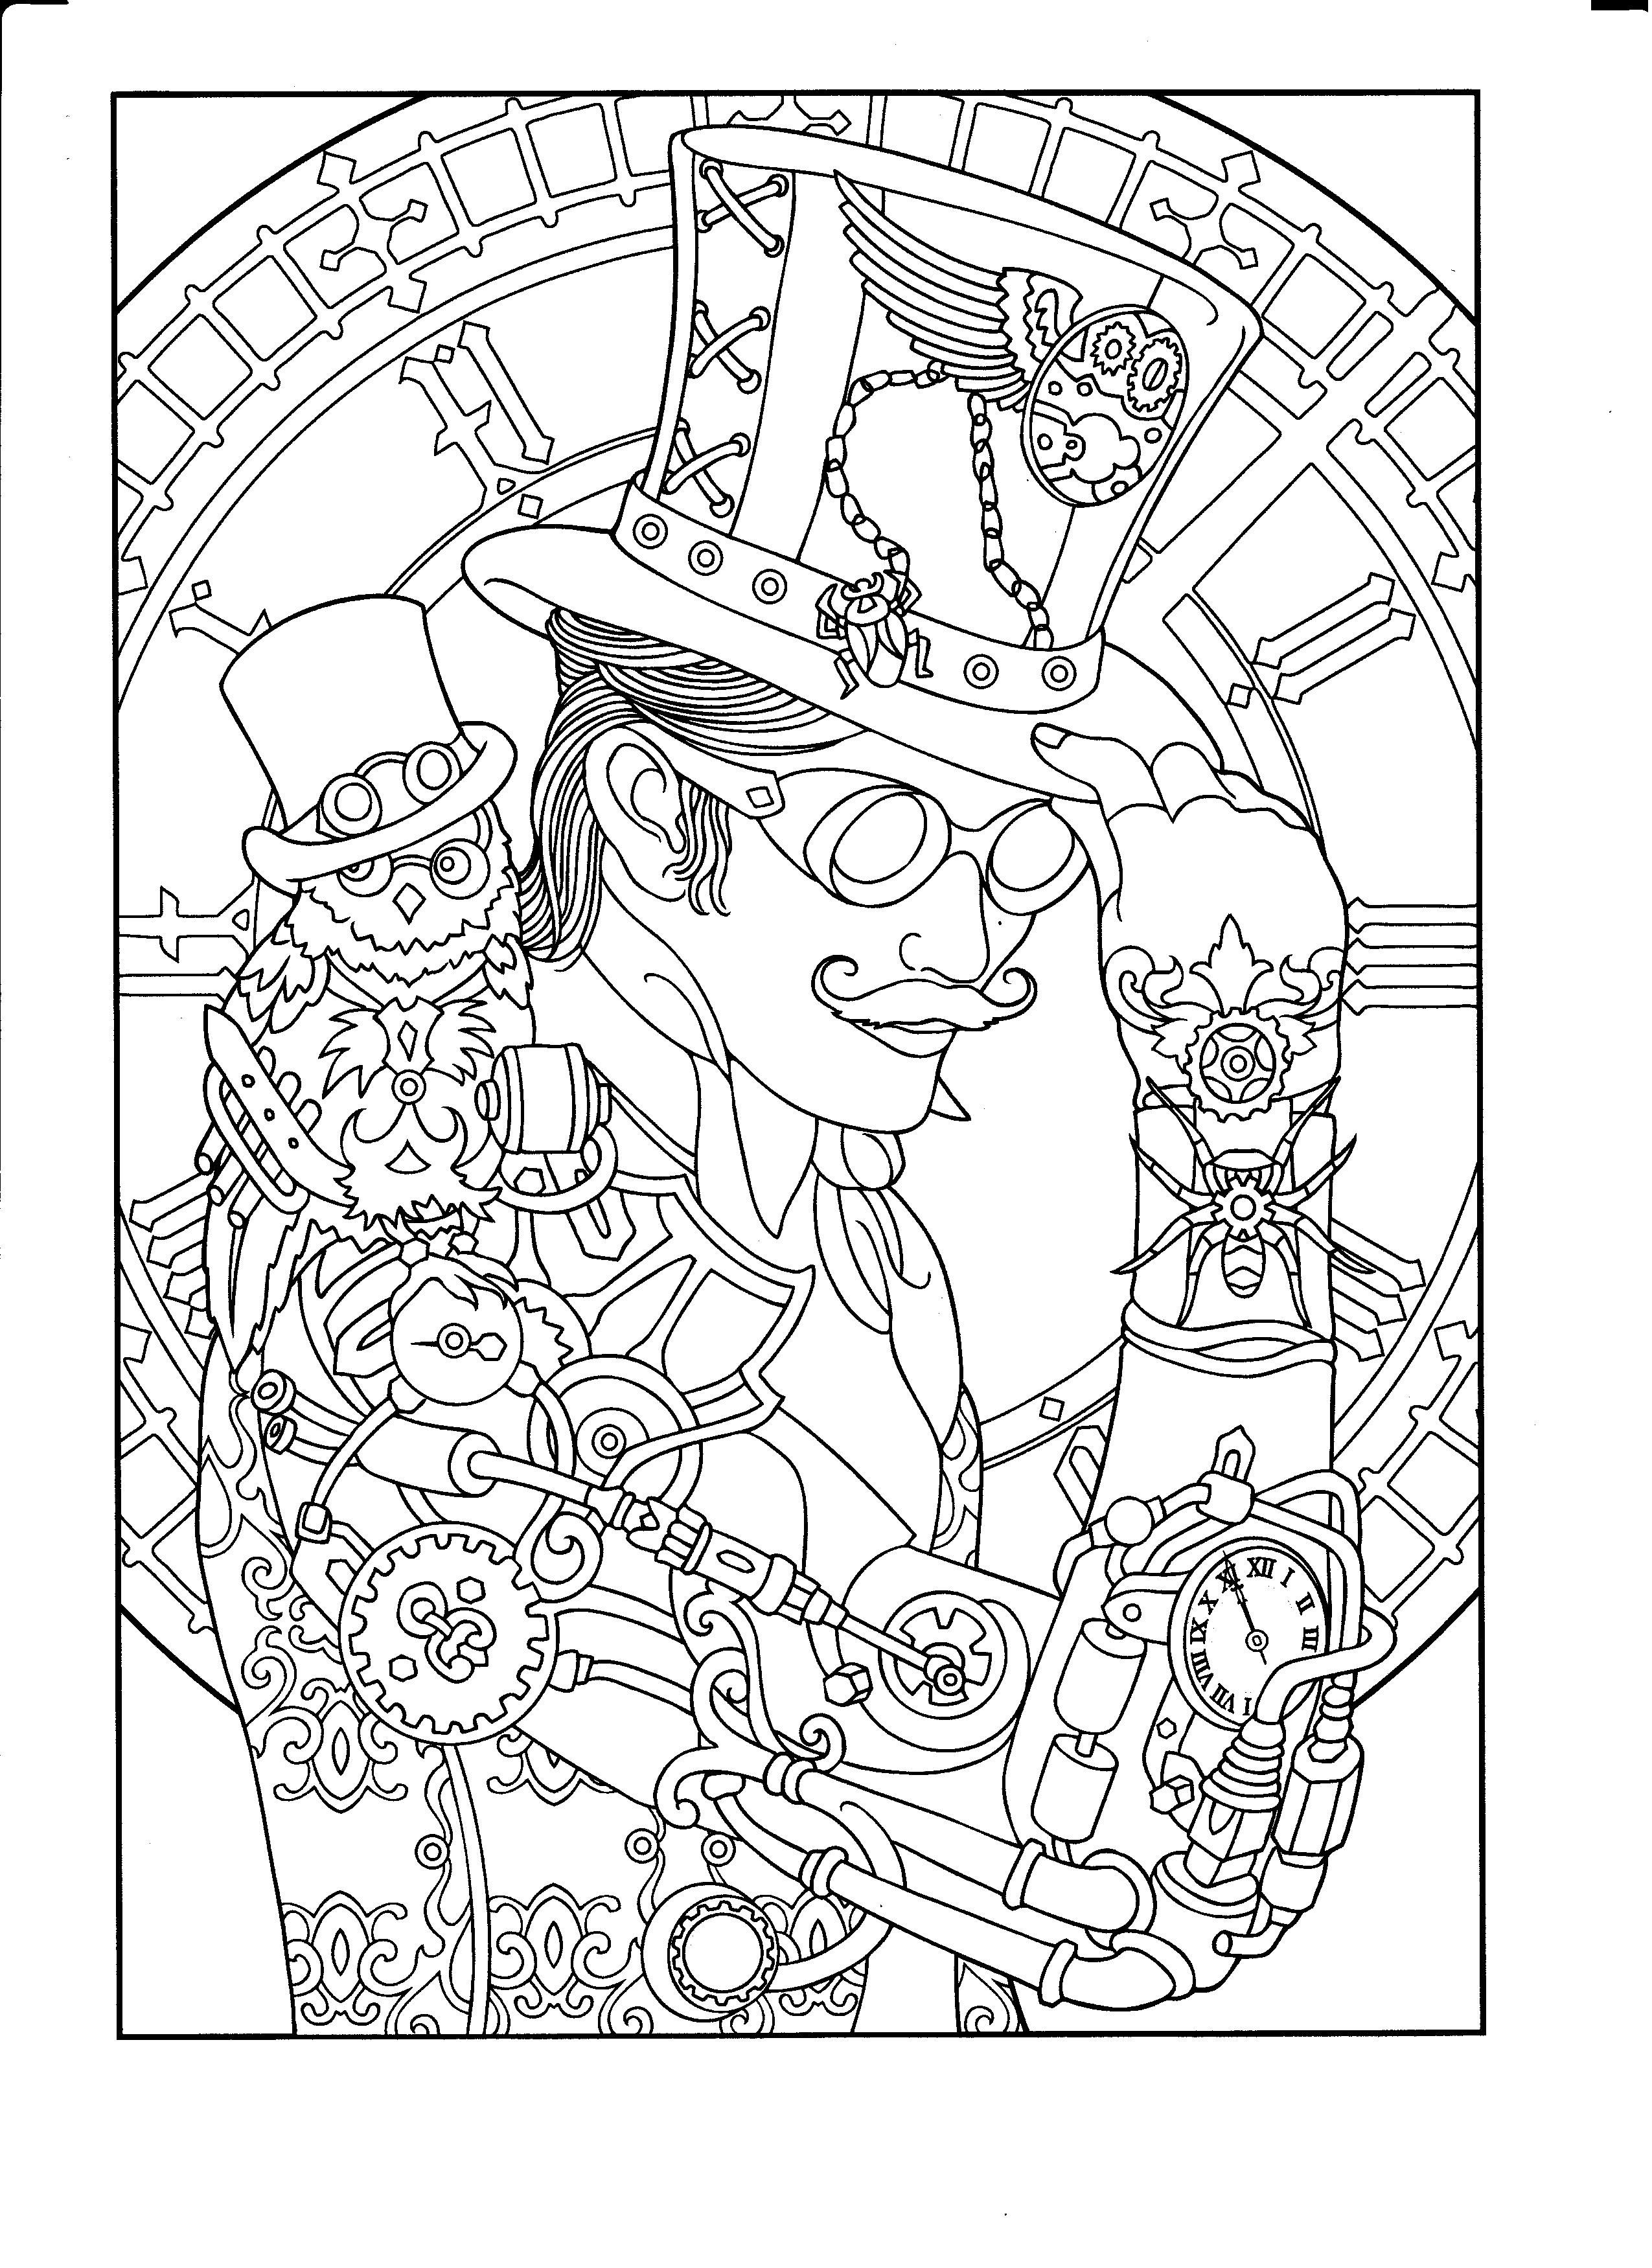 Steampunk coloring page. Adult Coloring Steampunk Style